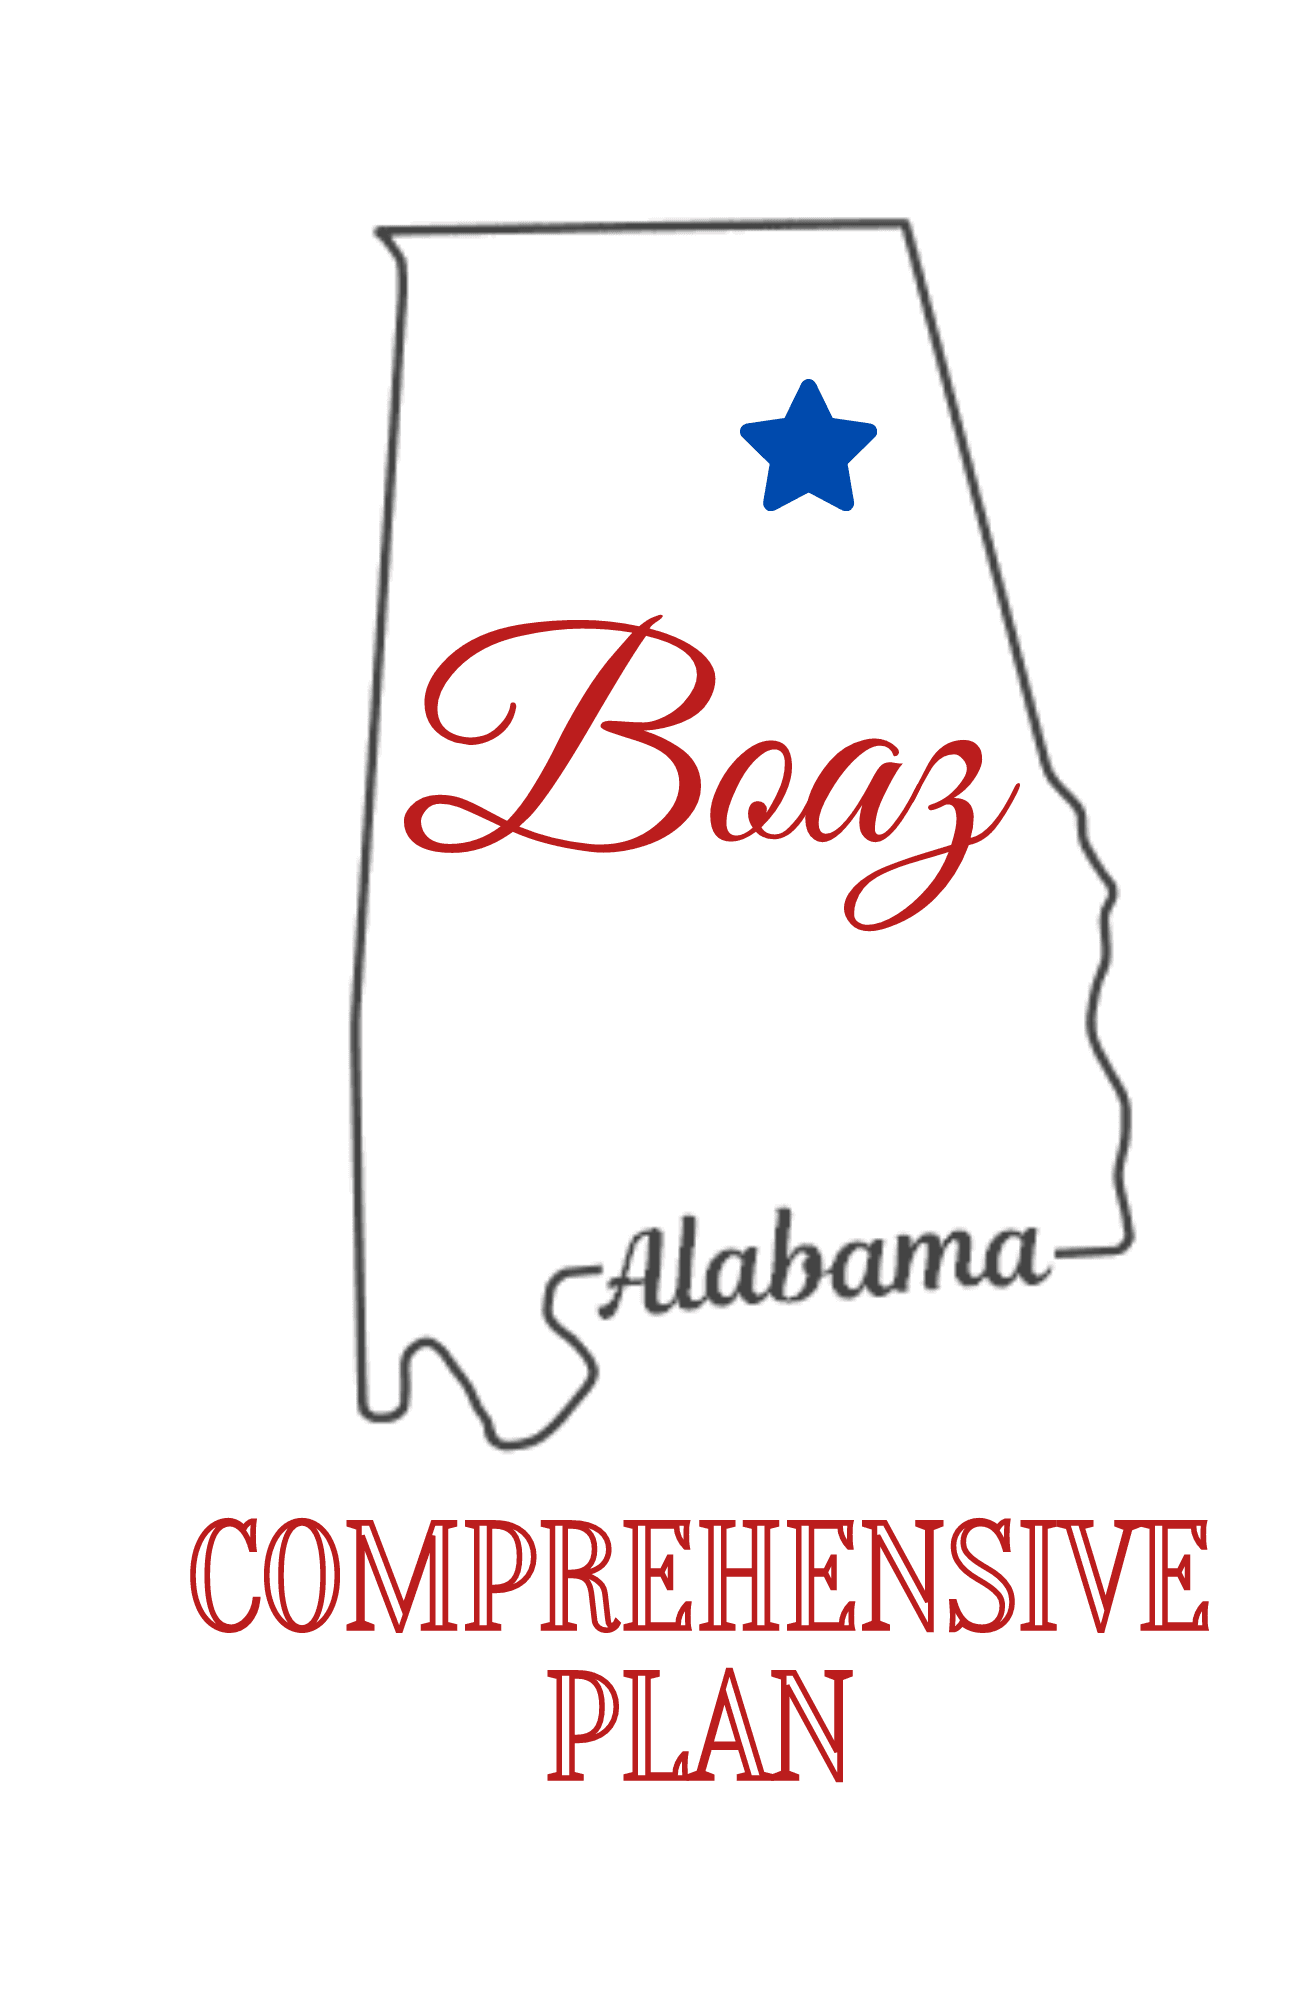 Boaz Comprehensive Plan Opens in new window